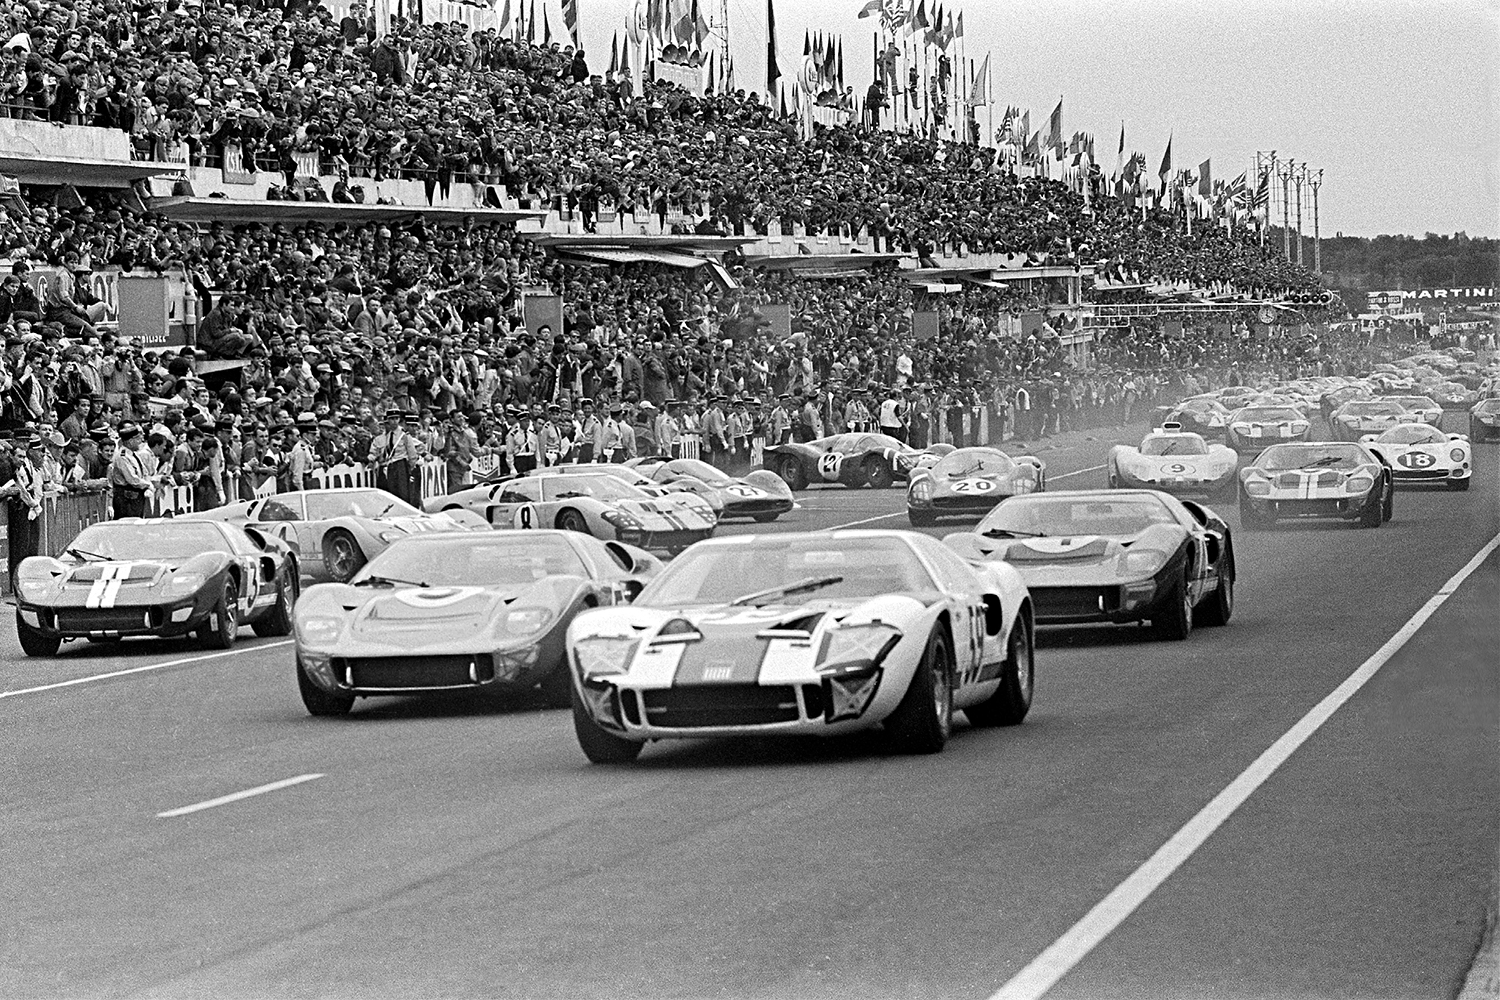 1966 24 Hours of Le Mans Race in Ford v Ferrari